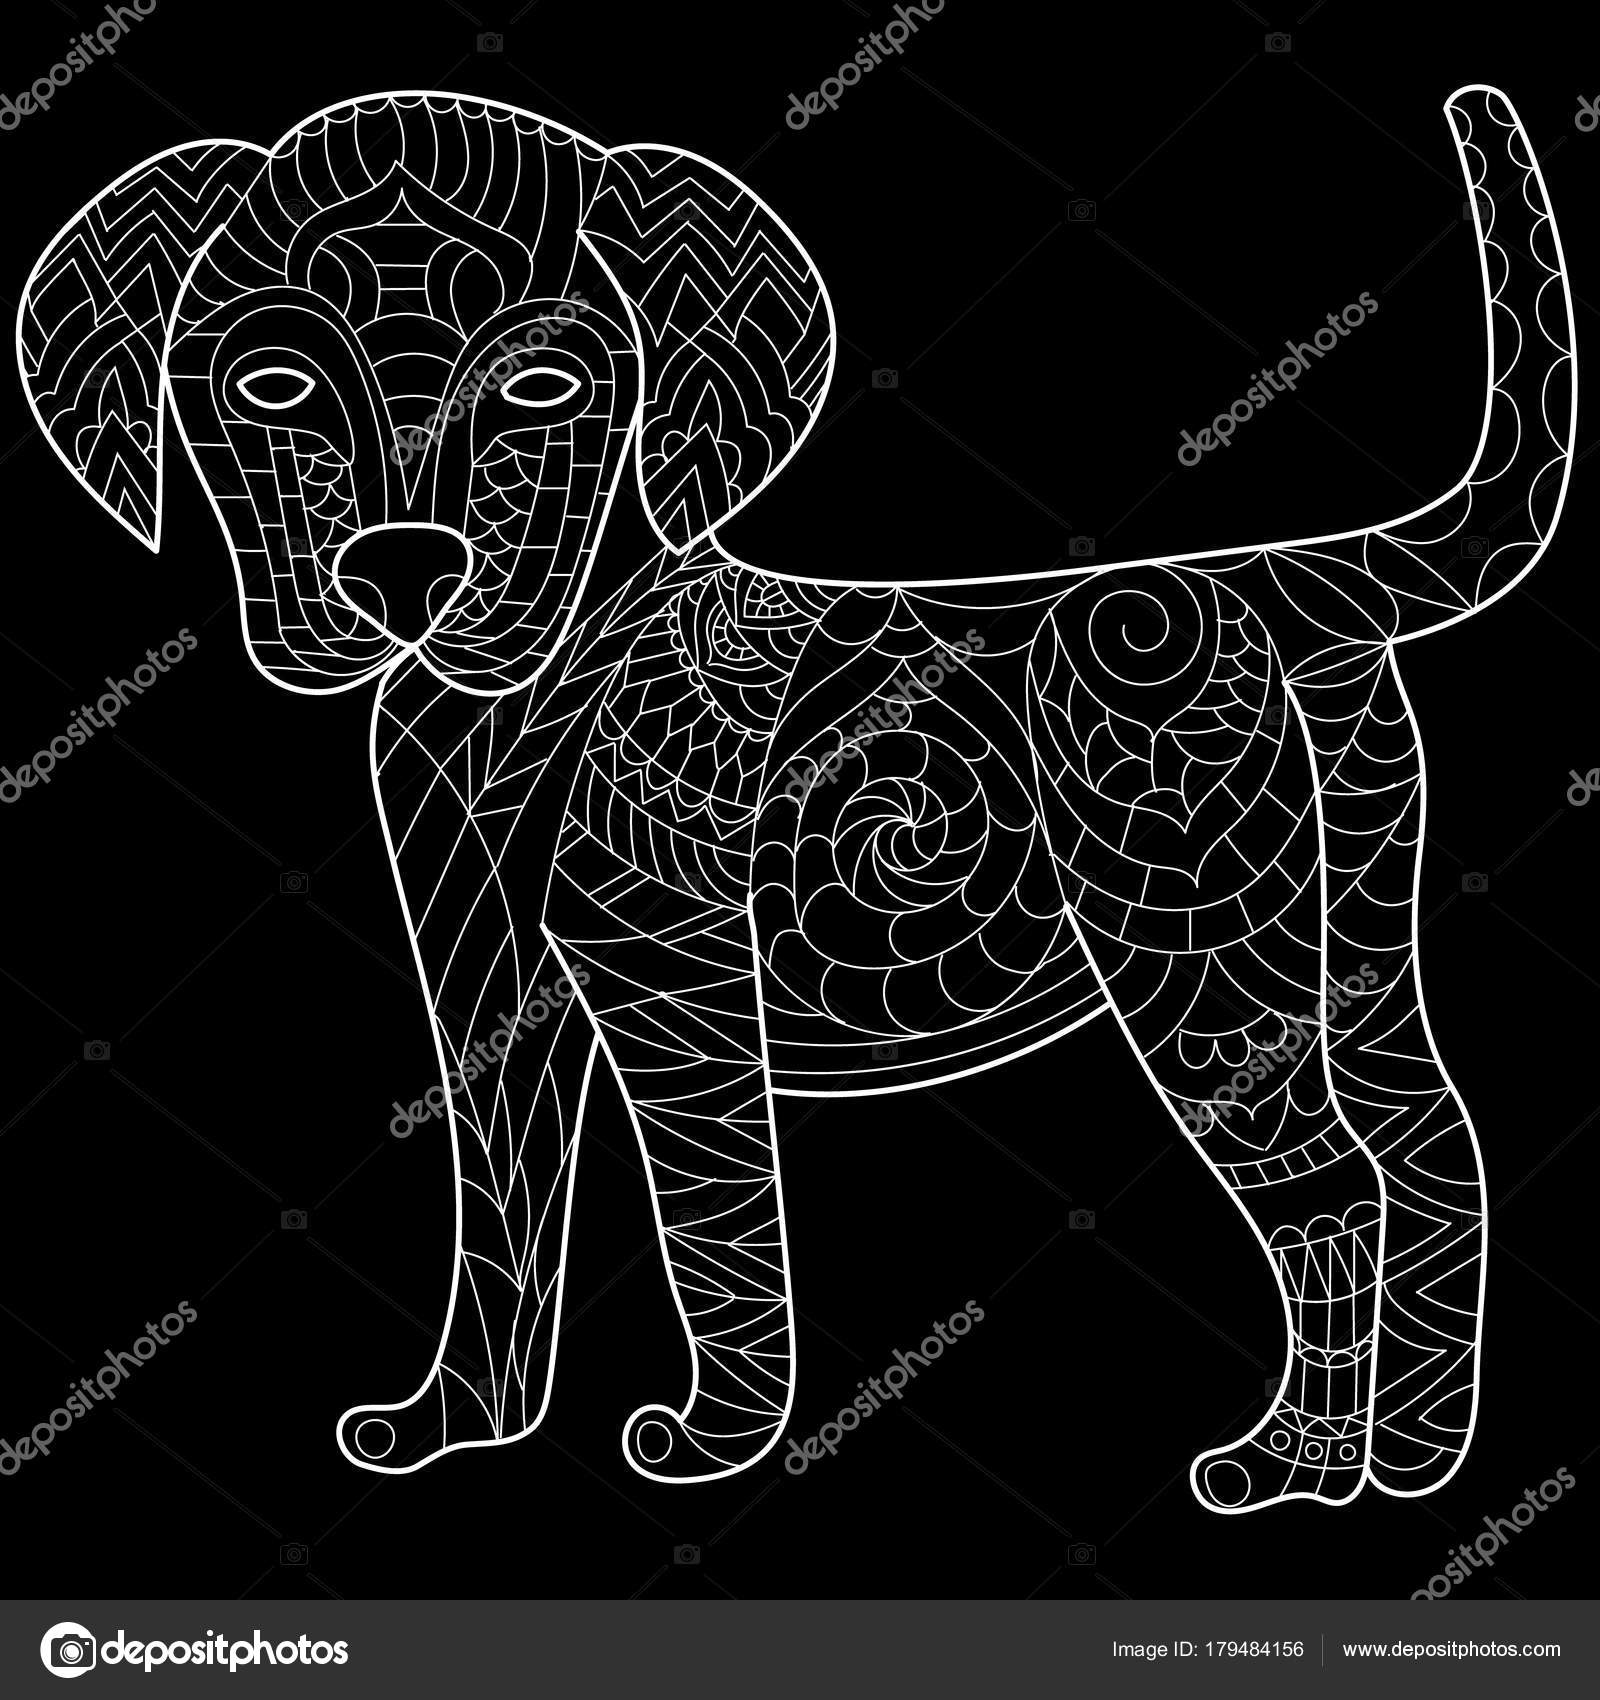 Dog Anti Stress Vector Coloring Book For Adult Isolated Ornament On White Background With Doodle